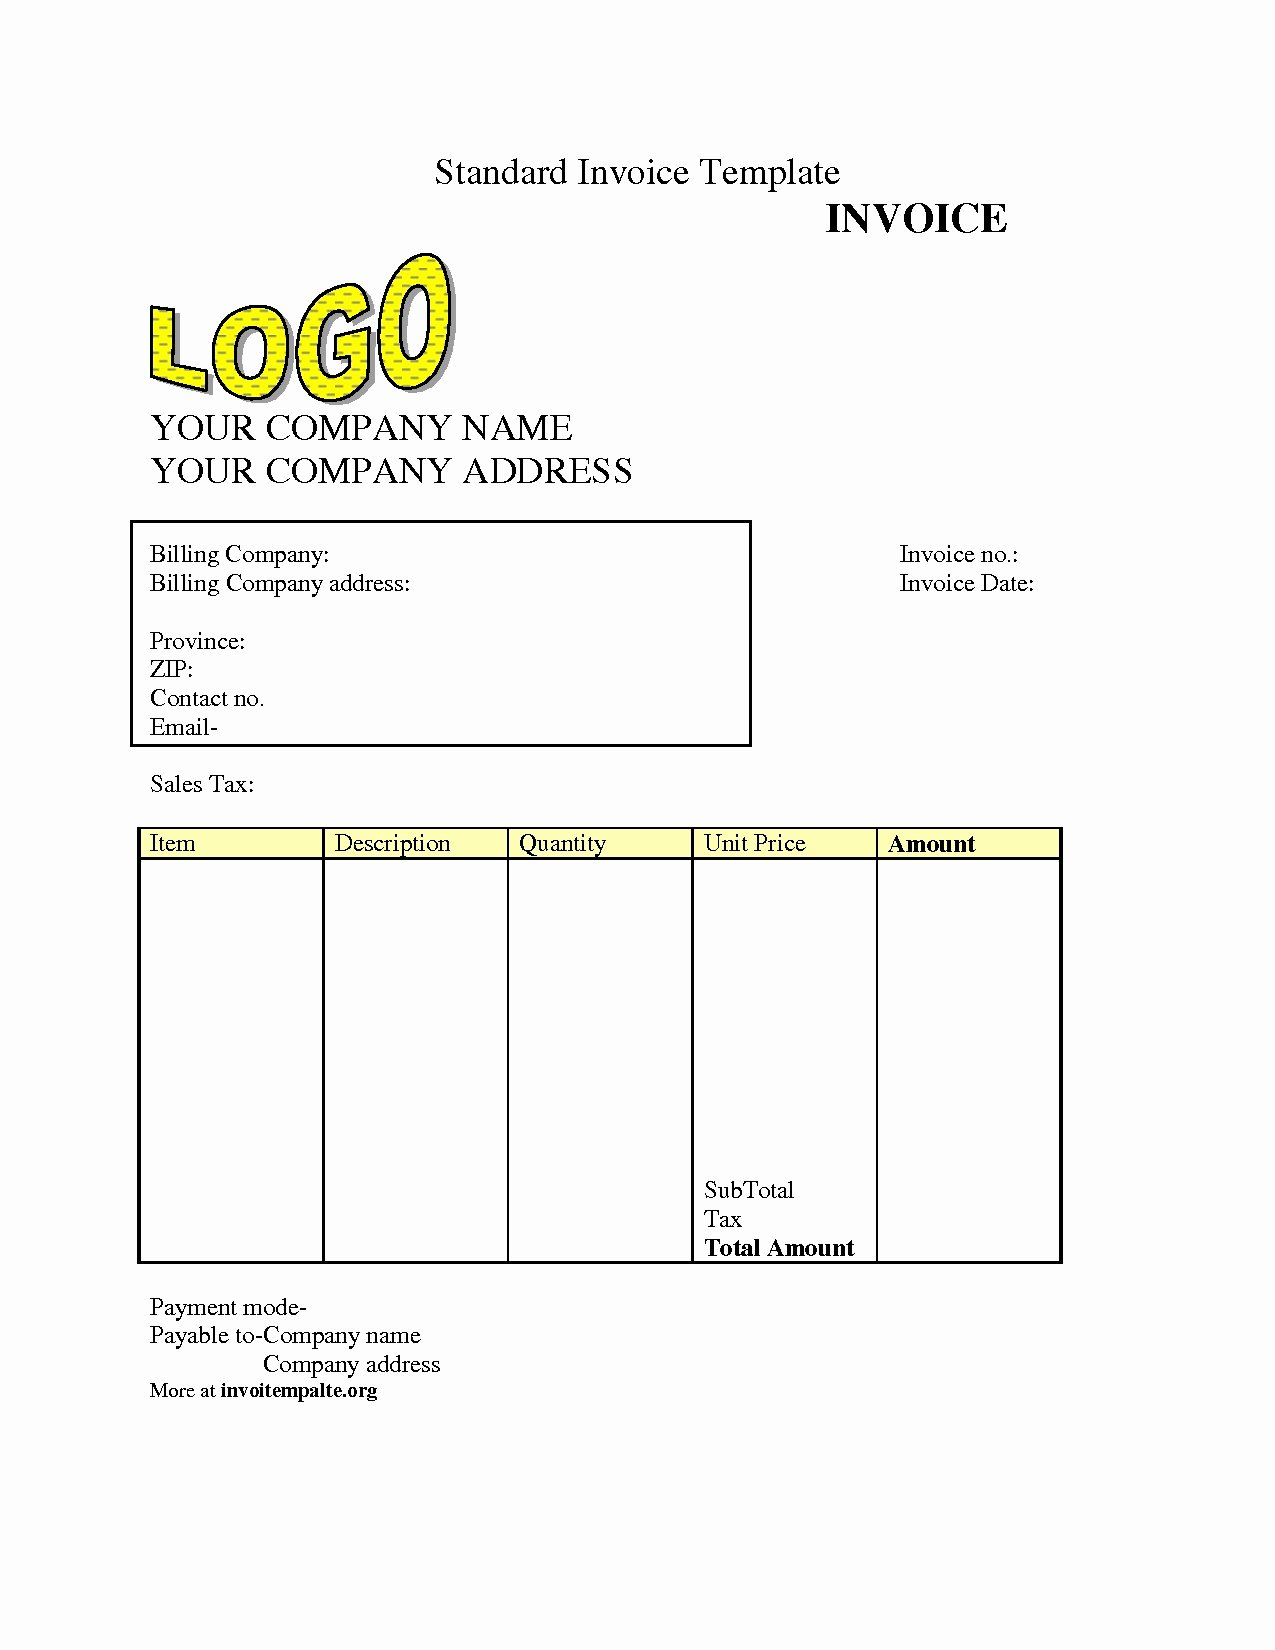 Free Invoice Template Downloads Invoice Template Ideas